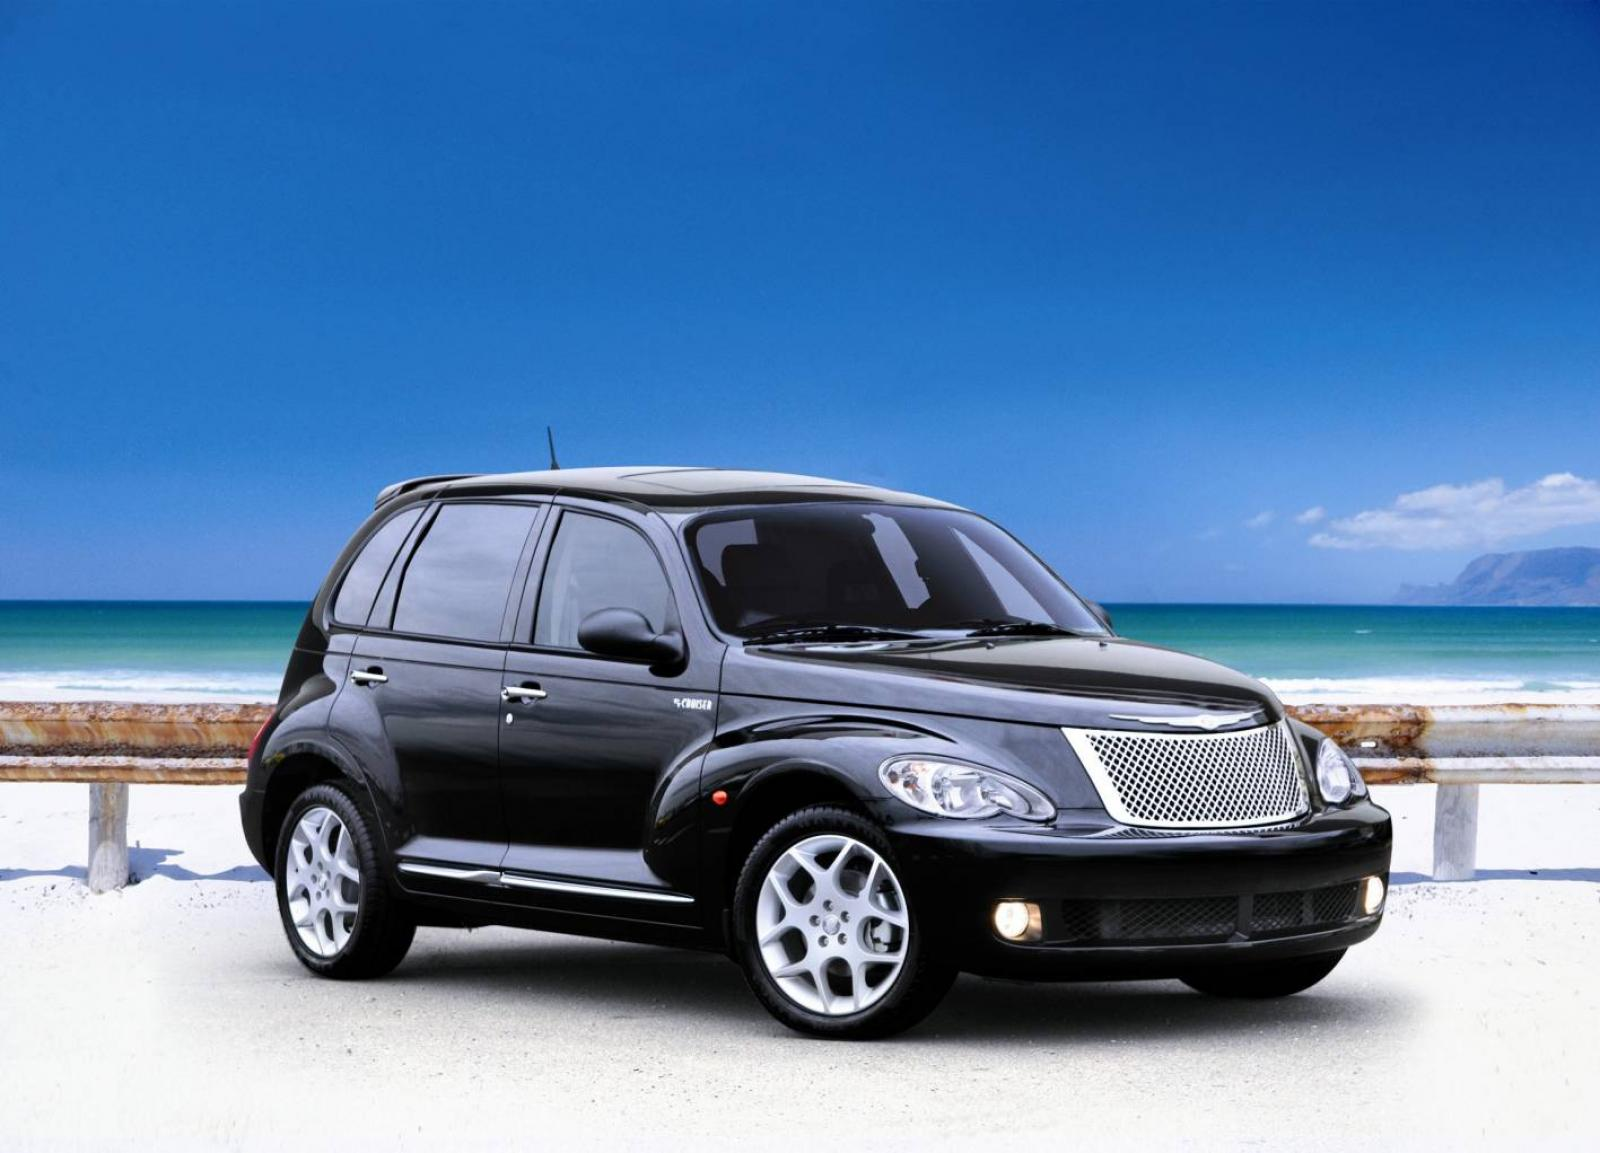 2010 chrysler pt cruiser information and photos zombiedrive. Black Bedroom Furniture Sets. Home Design Ideas